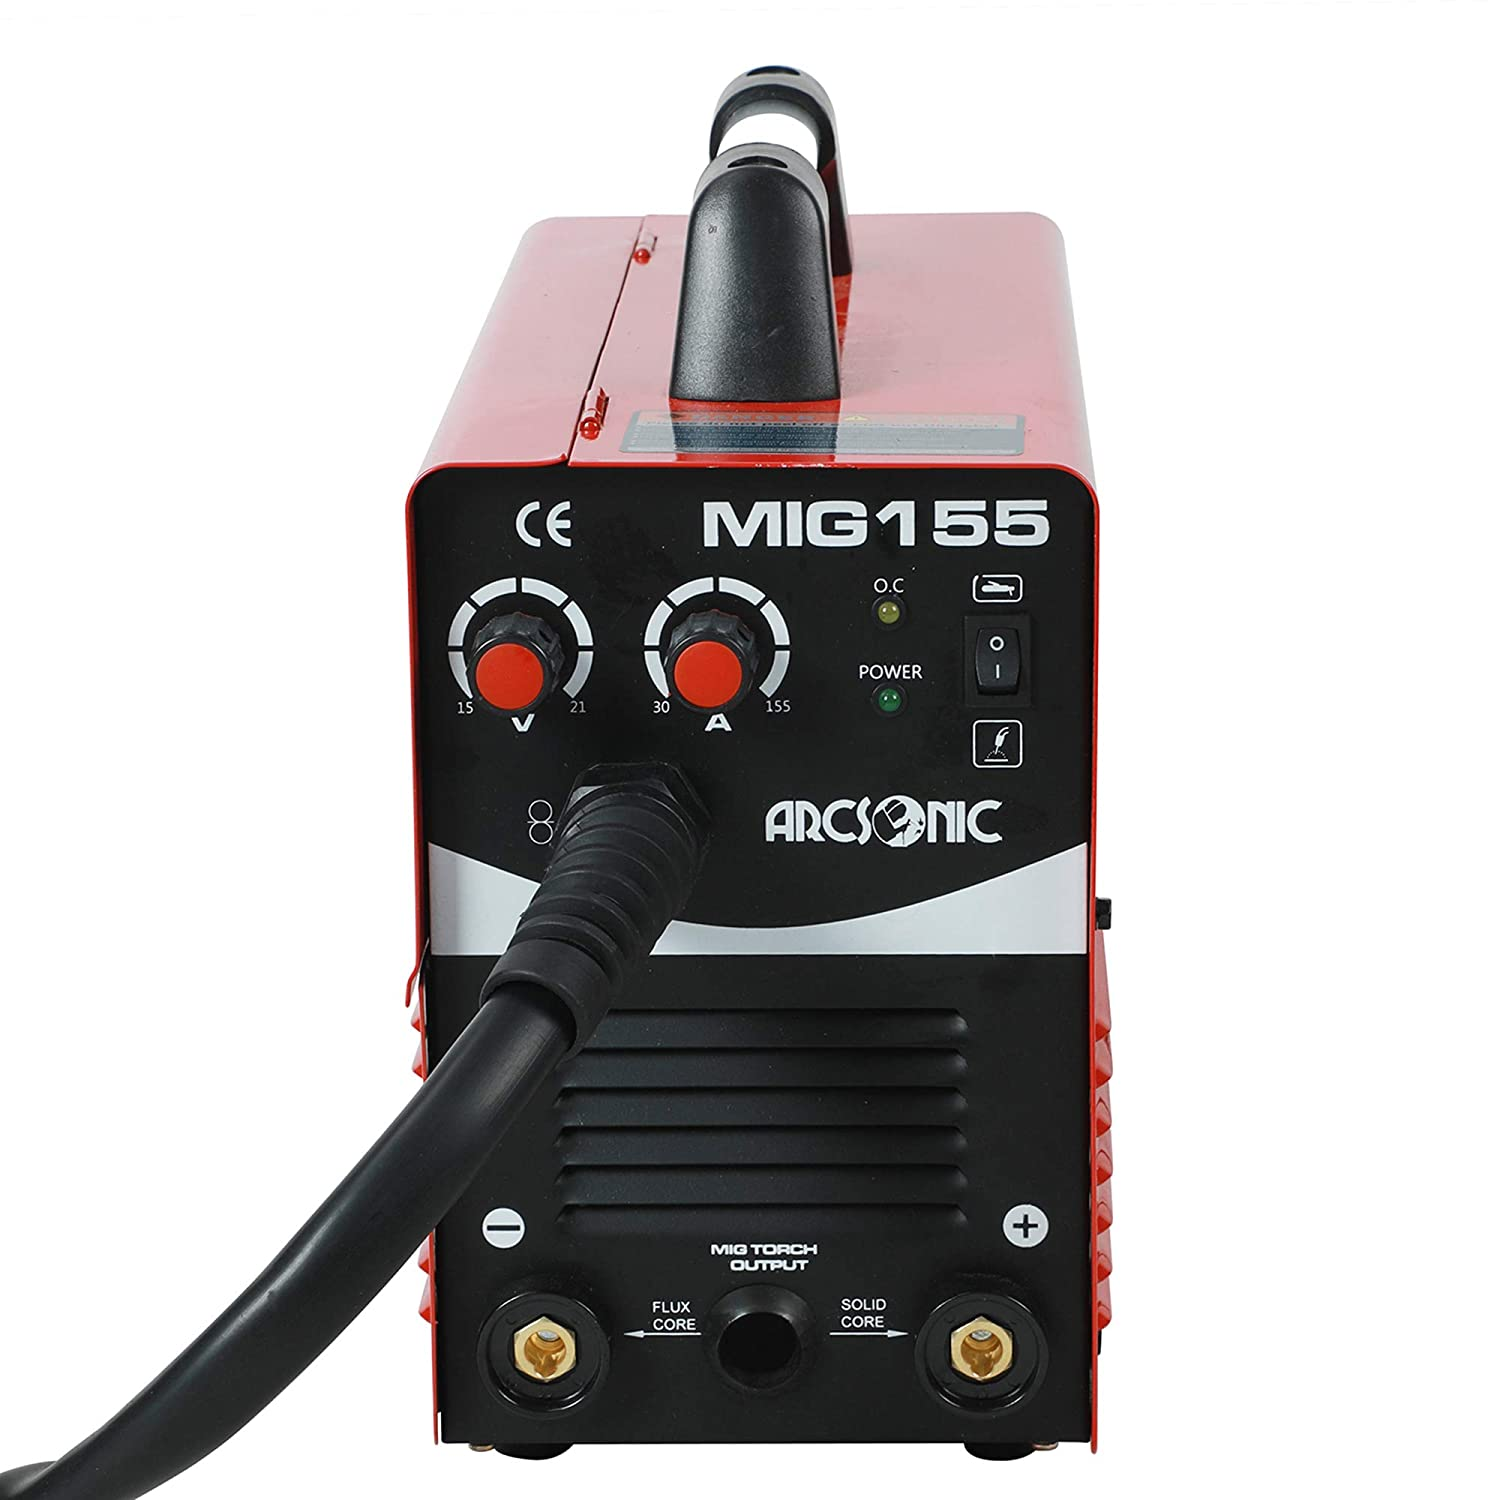 220V Mig Welding Machine MIG155 Gas/No Gas, MMA/MIG Flux Wire Welding machine 2 in 1 MMA/Mig Welding Machine 220V Input - - Amazon.com